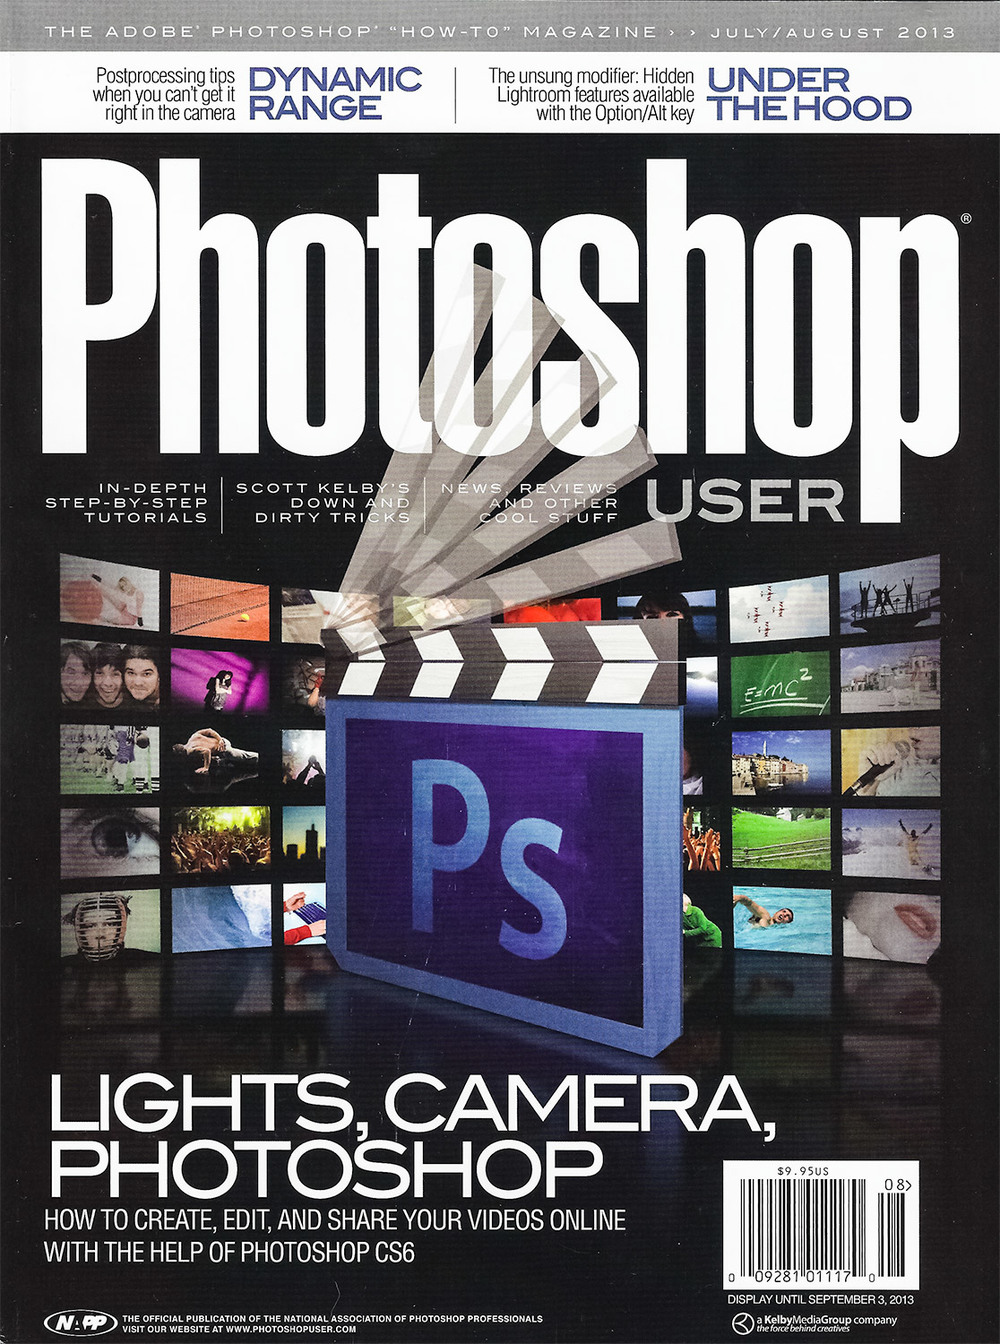 Photoshop User Magazine July/August Issue 2013